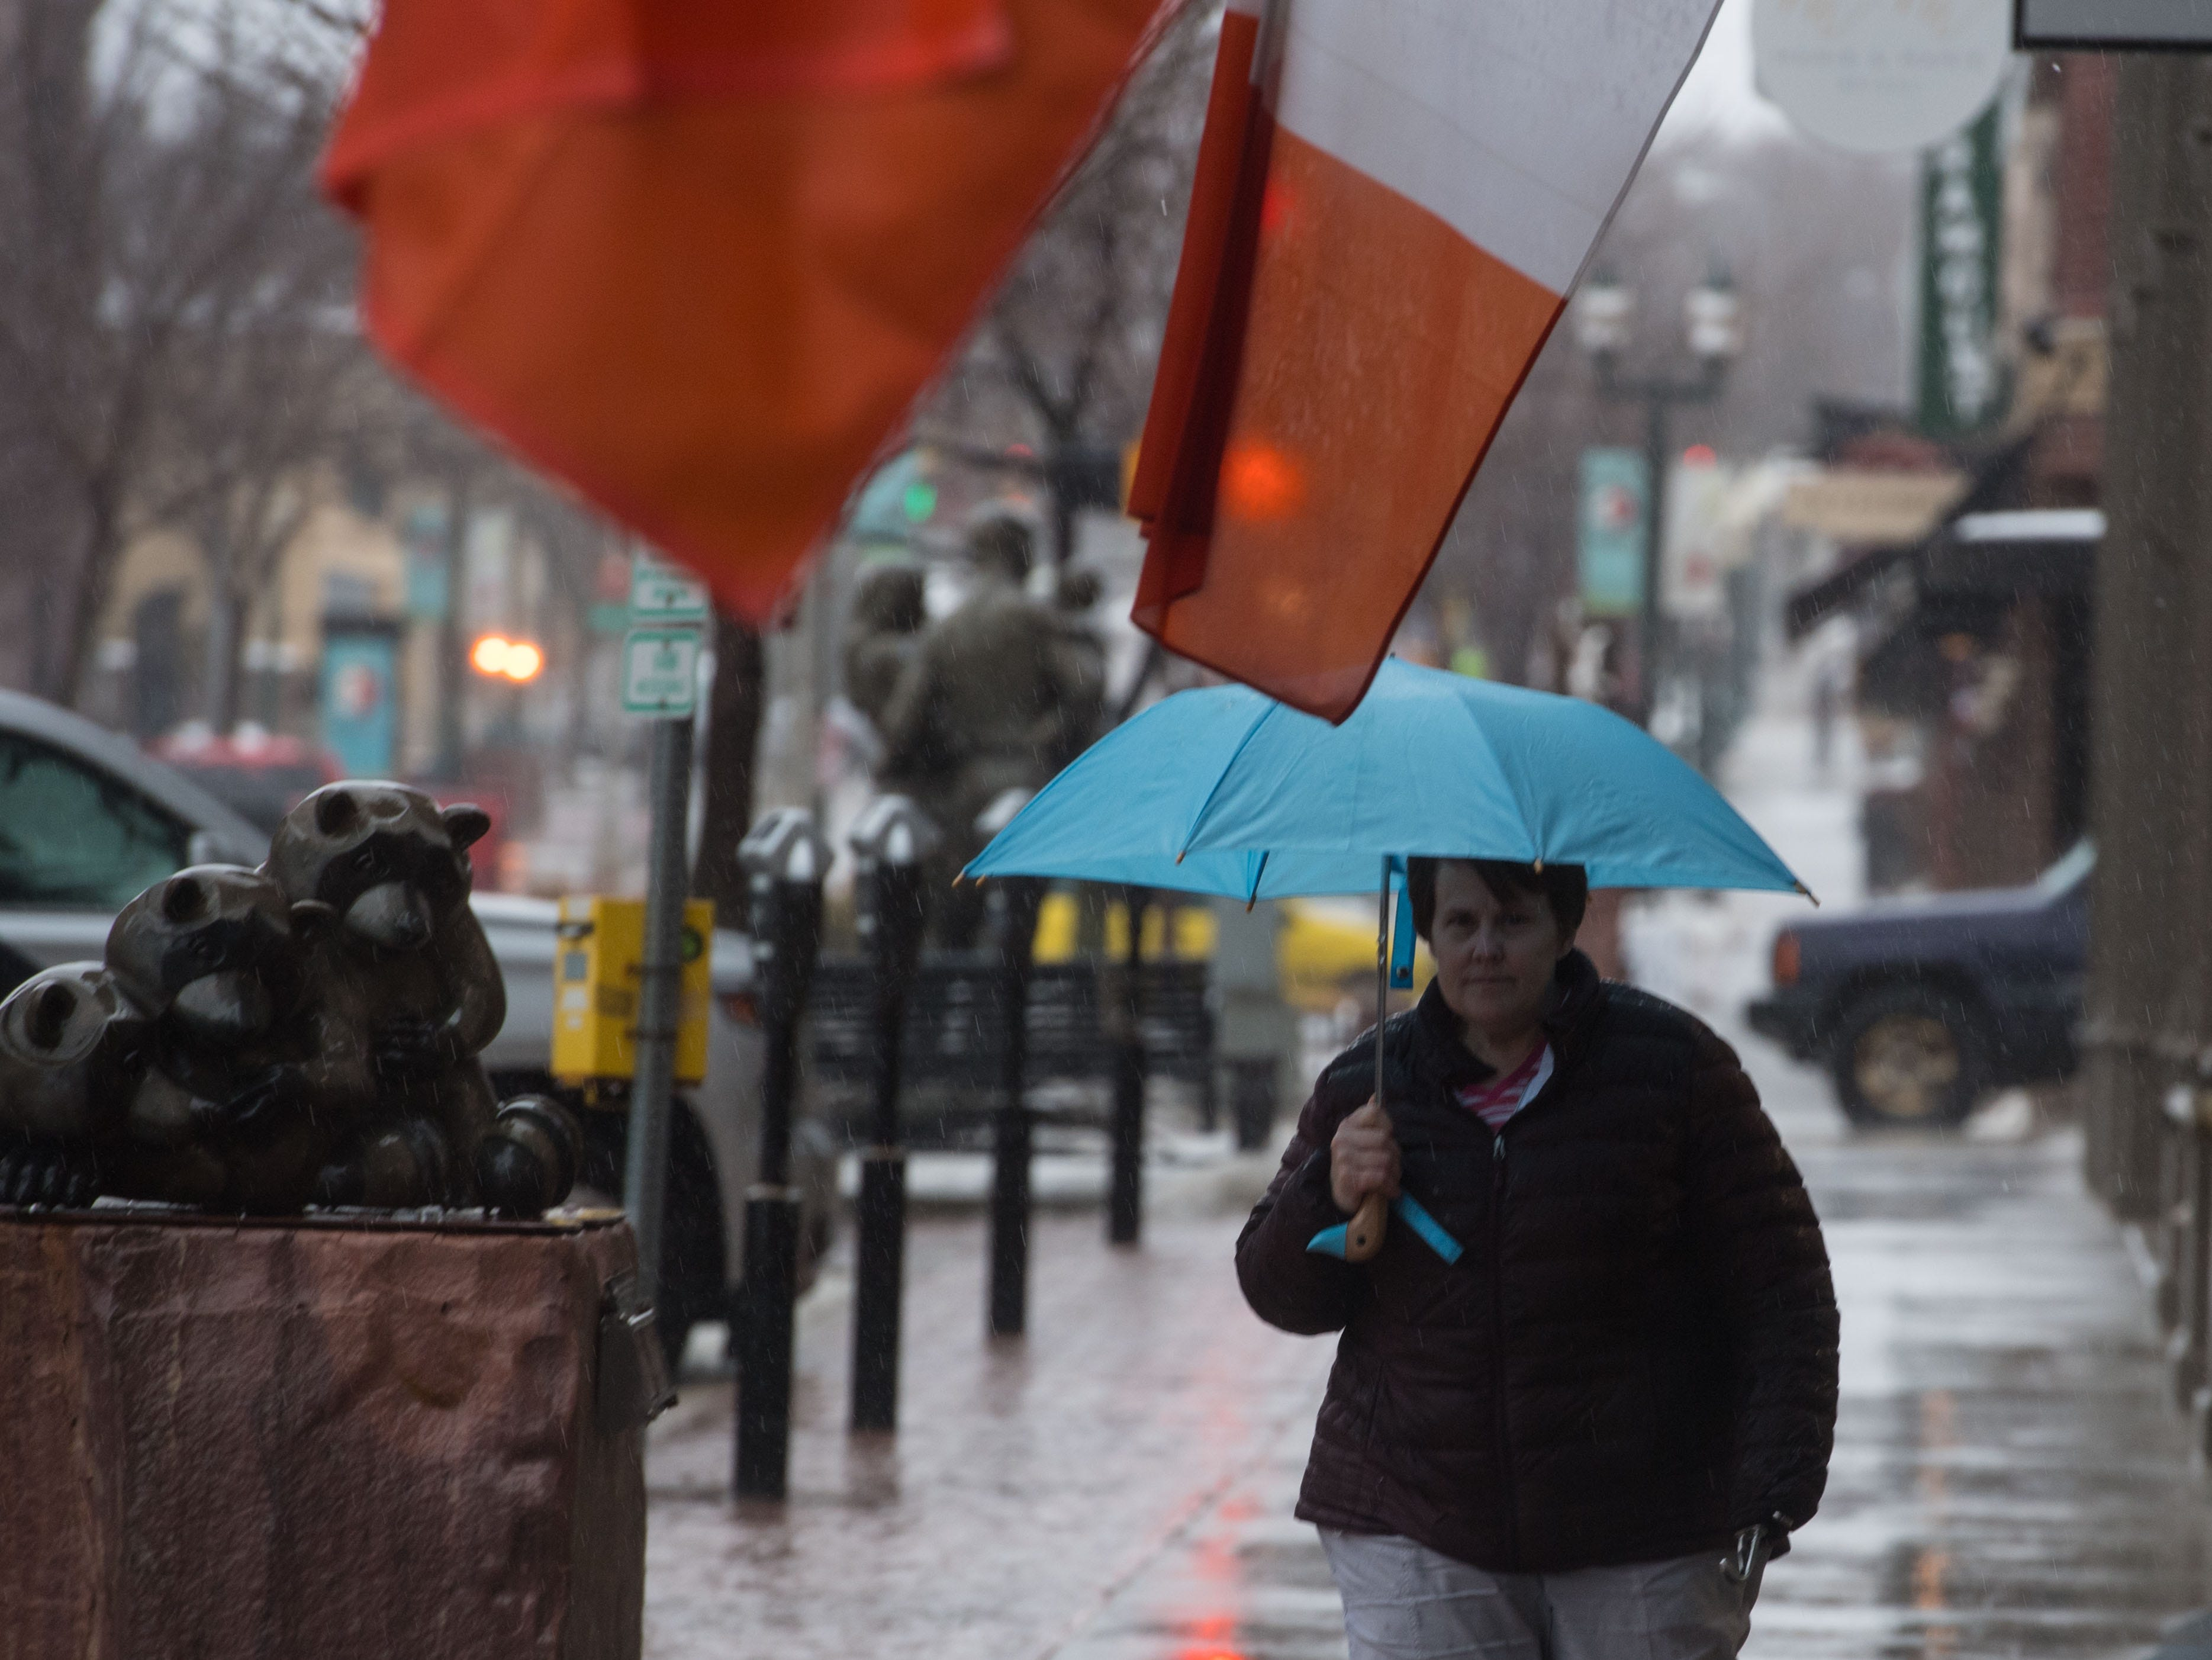 Robin Mills walks in the rain in downtown Sioux Falls, S.D., Wednesday, March 13, 2019.